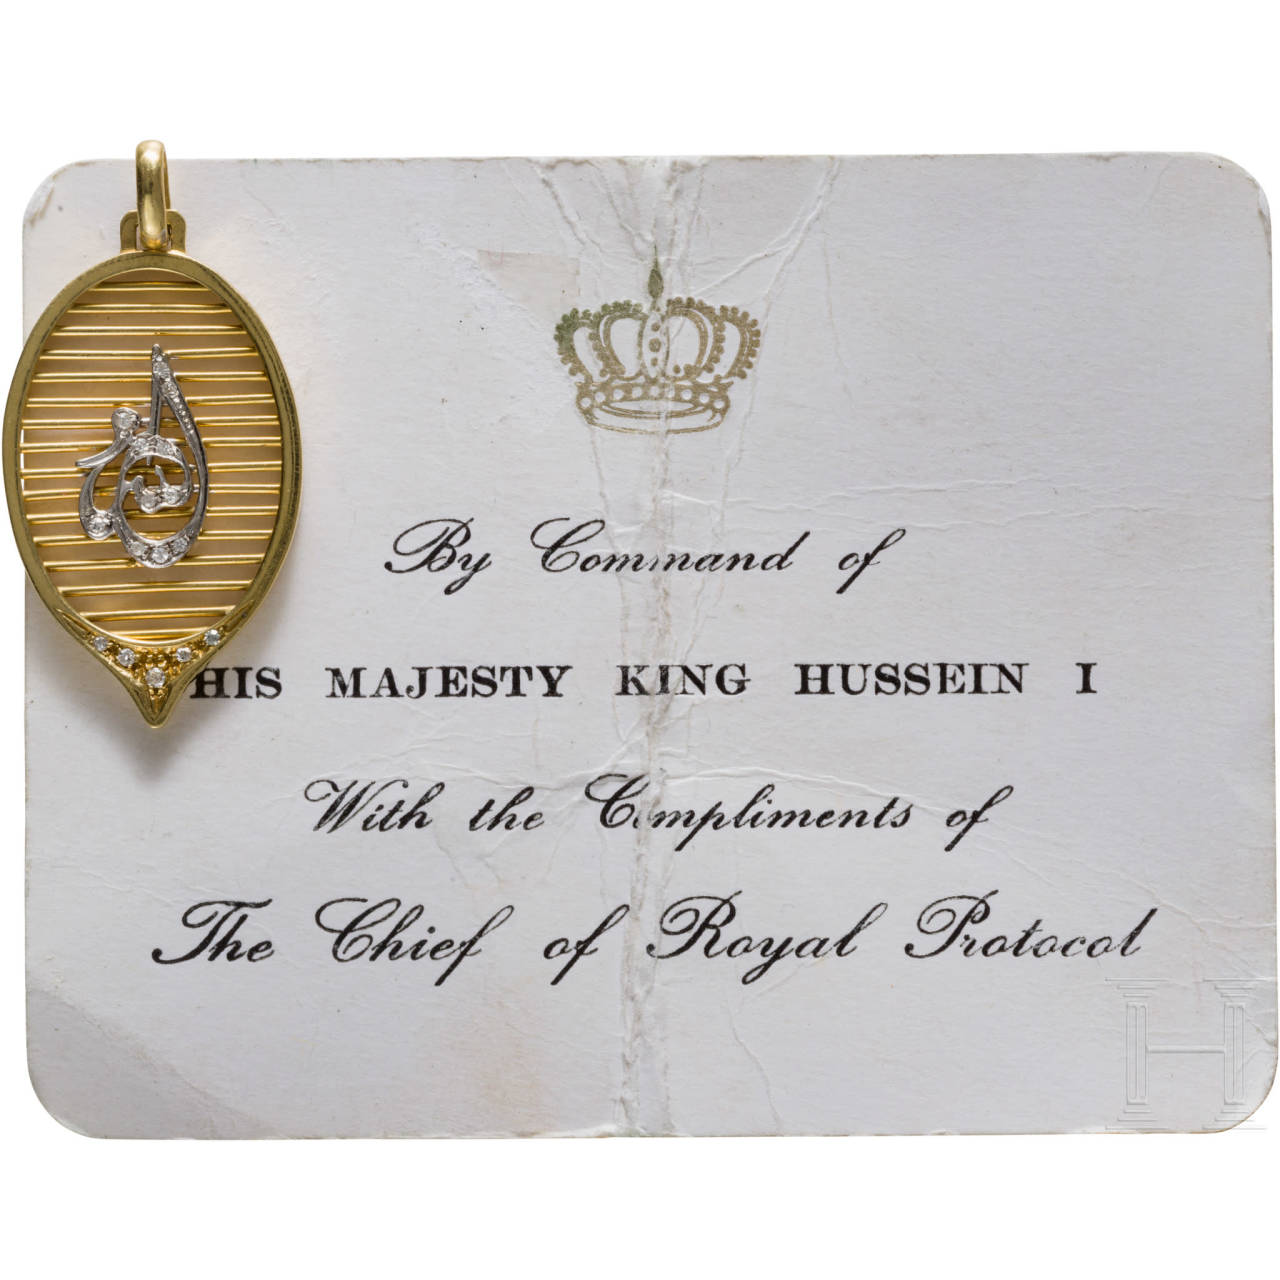 King Hussein I of Jordan (1935-99) - a diamond-studded gold pendant